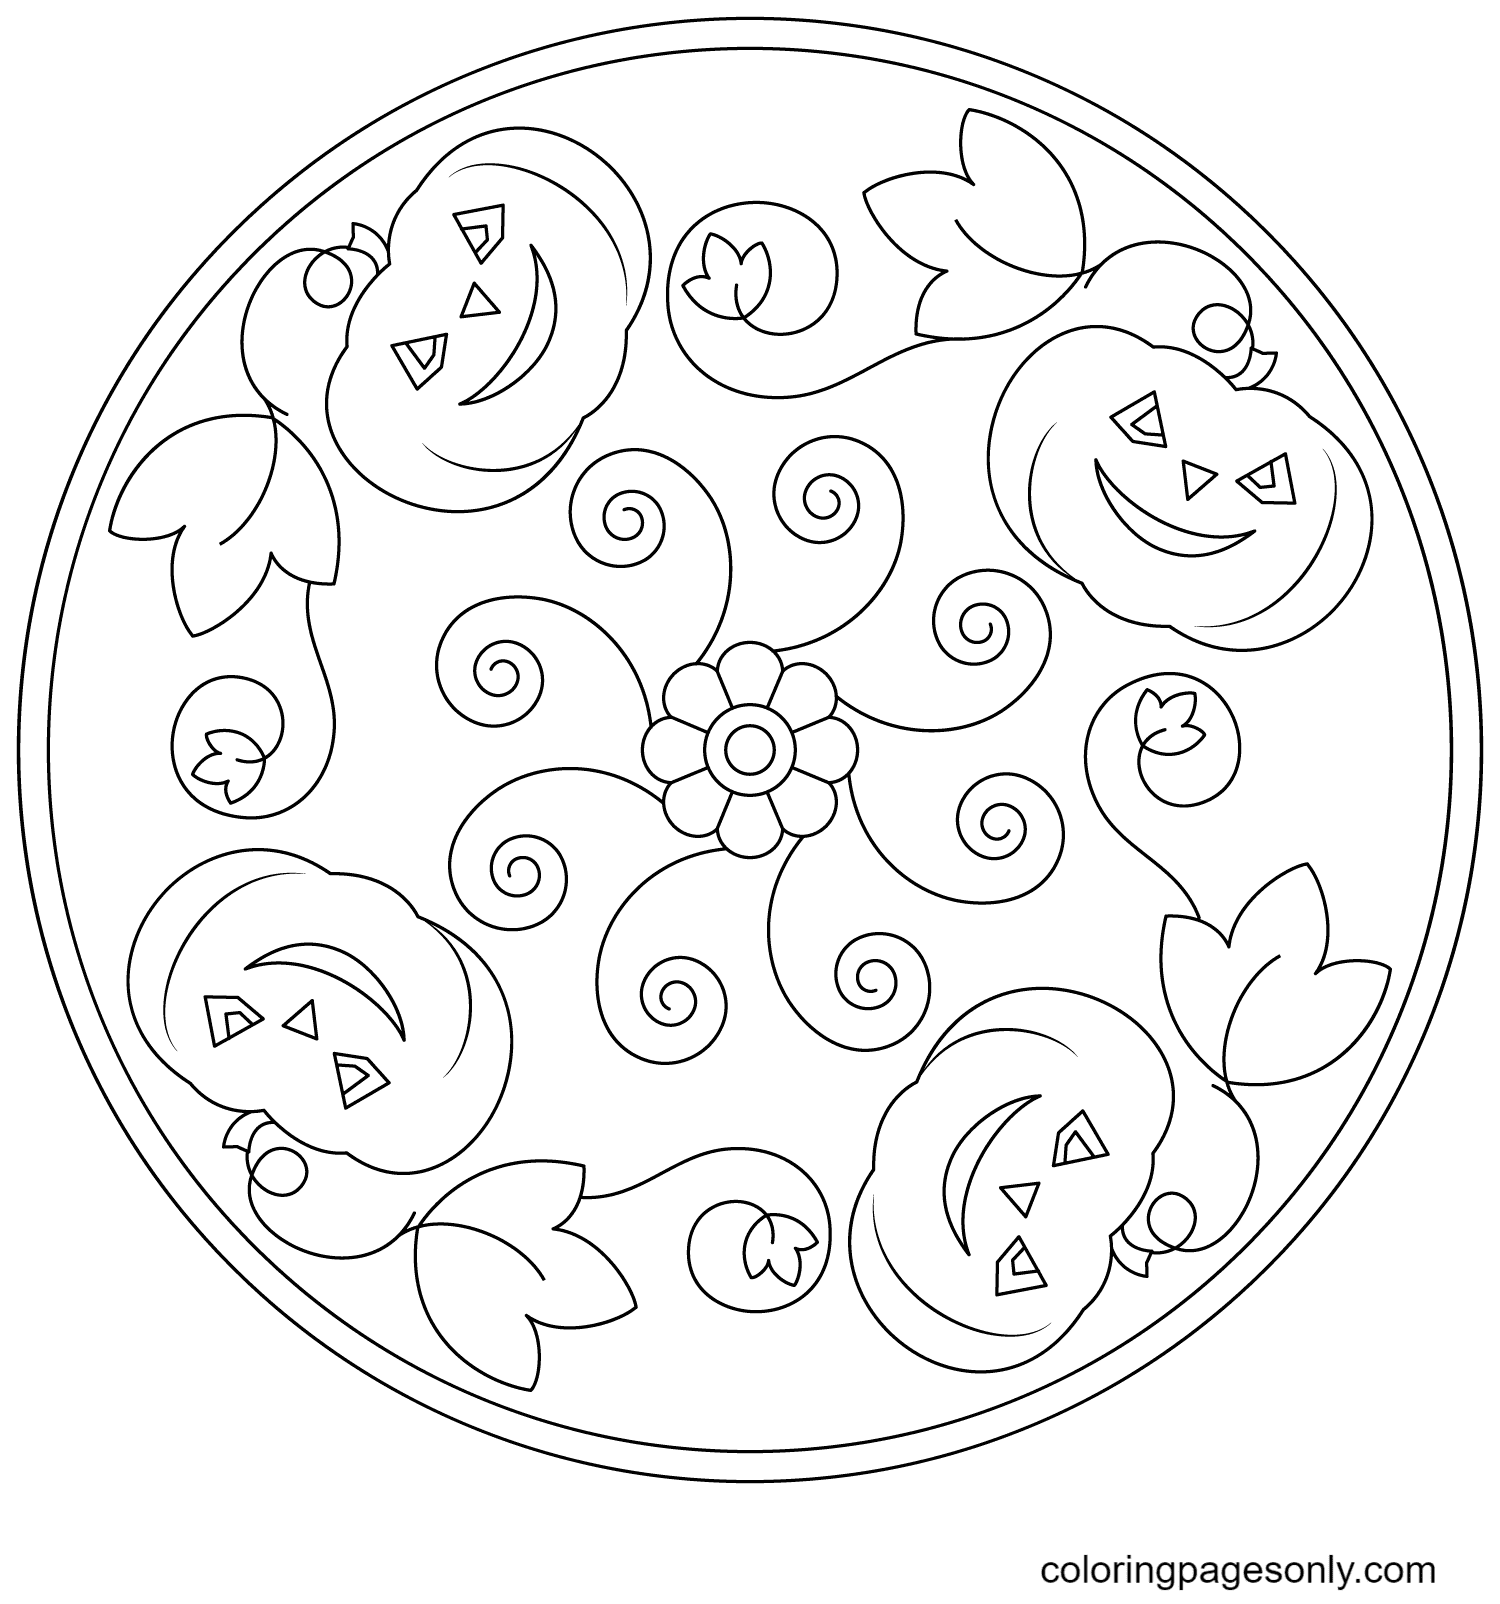 Halloween Mandala with Pumpkins and Flower Coloring Page